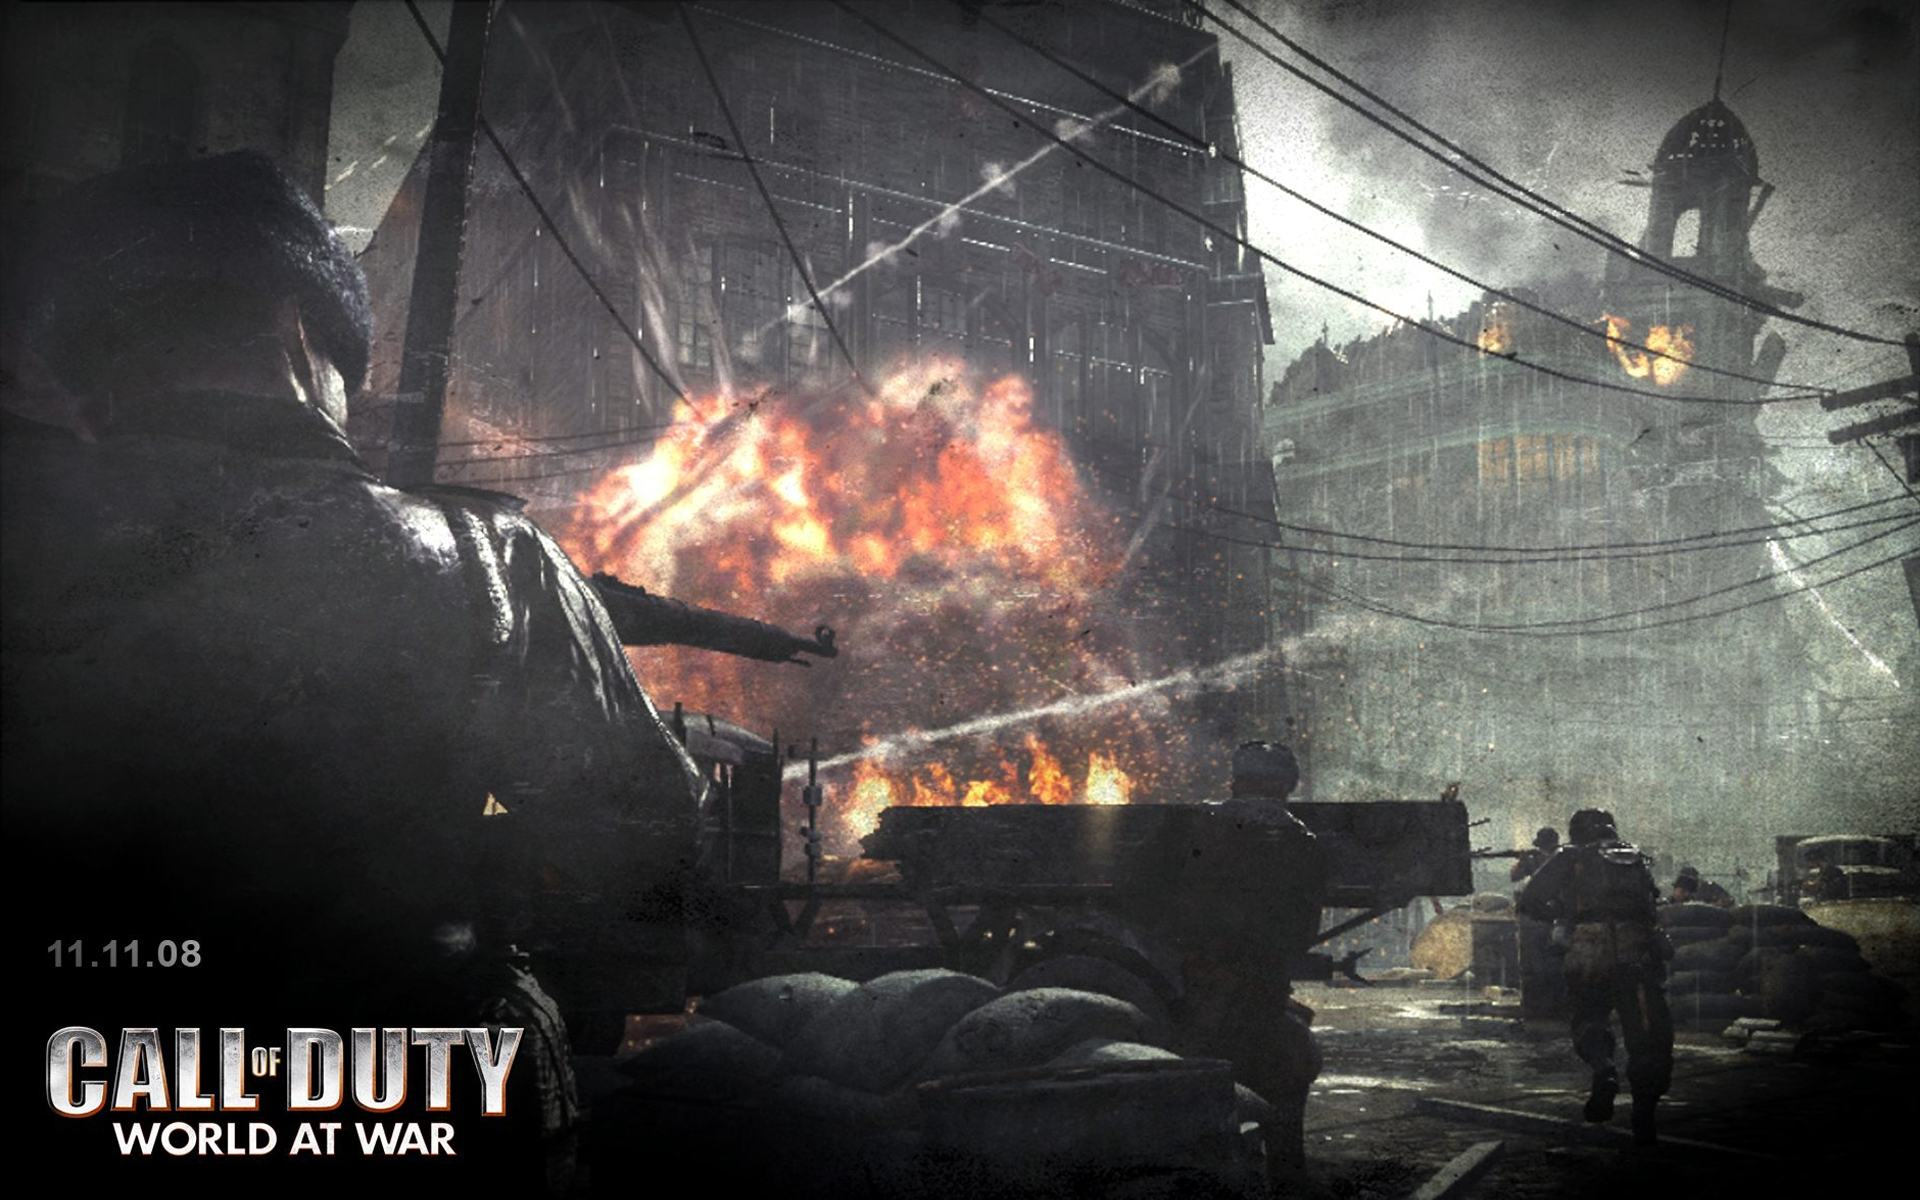 ���� Call of Duty, ������ ����� 1920x1200